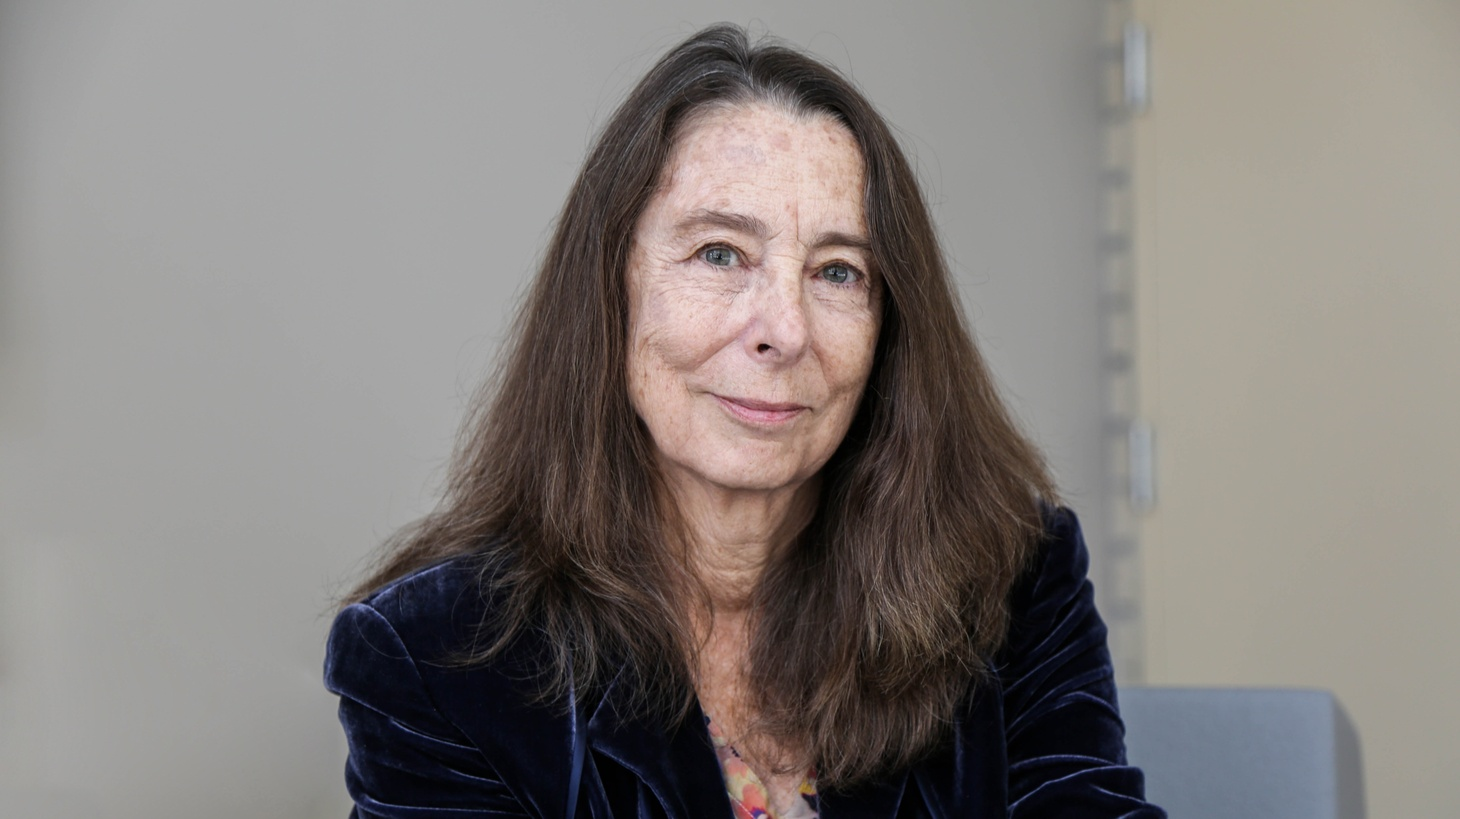 Author, Ann Beattie